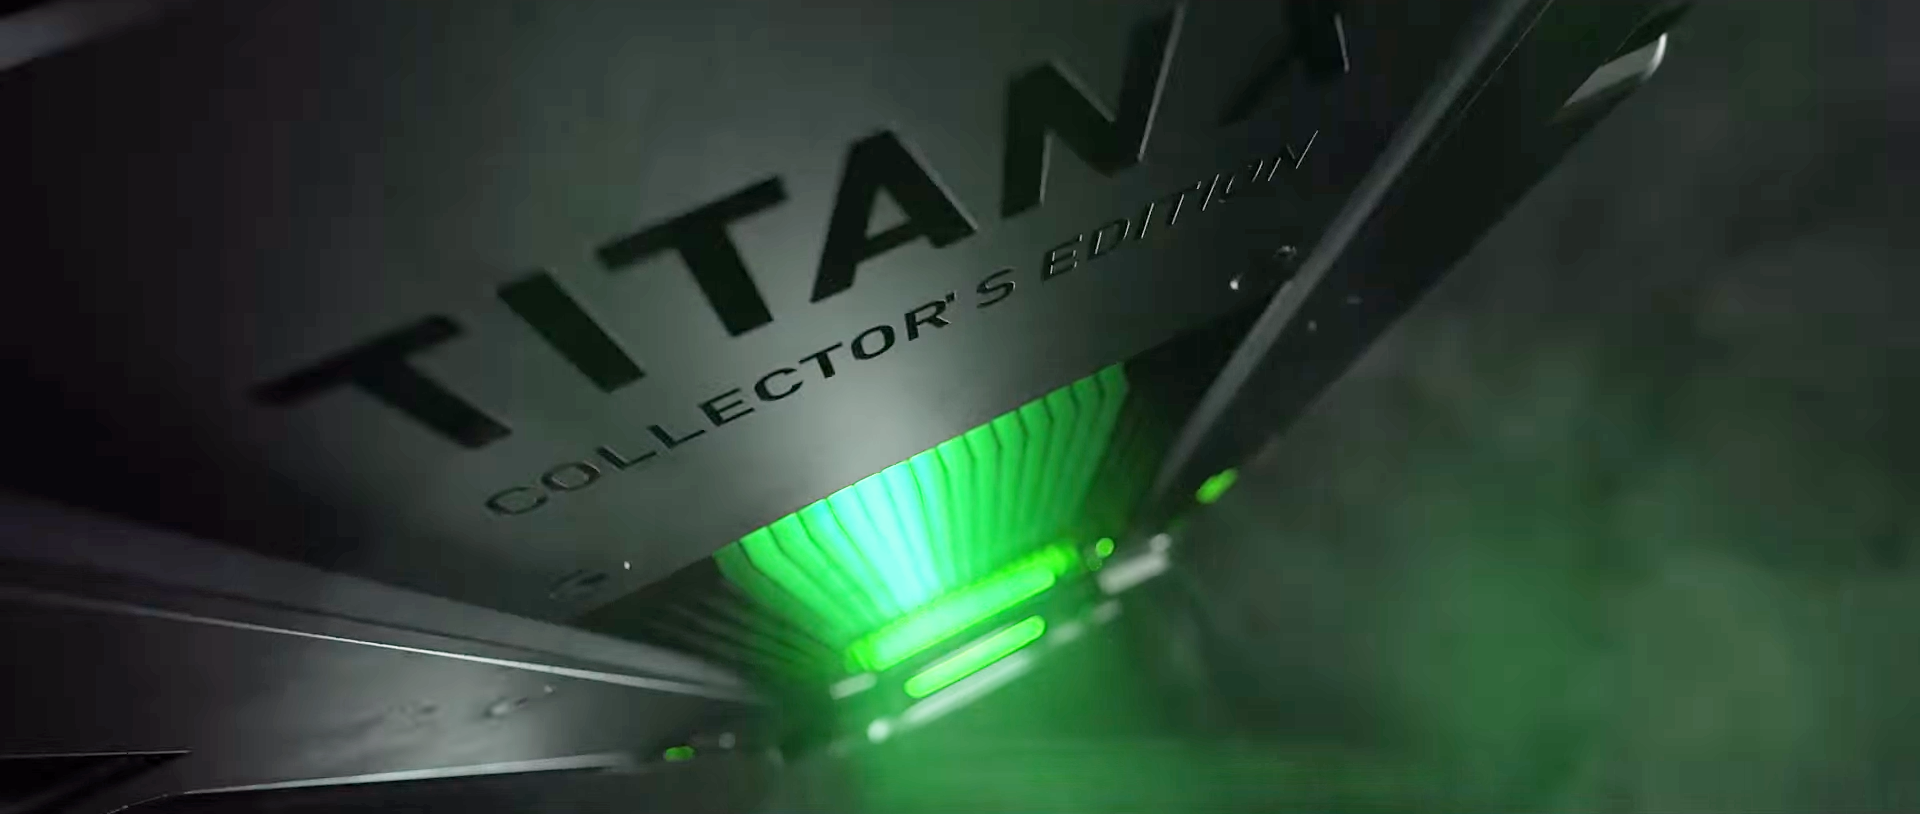 Nvidia is about to launch a GTX Titan X Collector's Edition graphics card